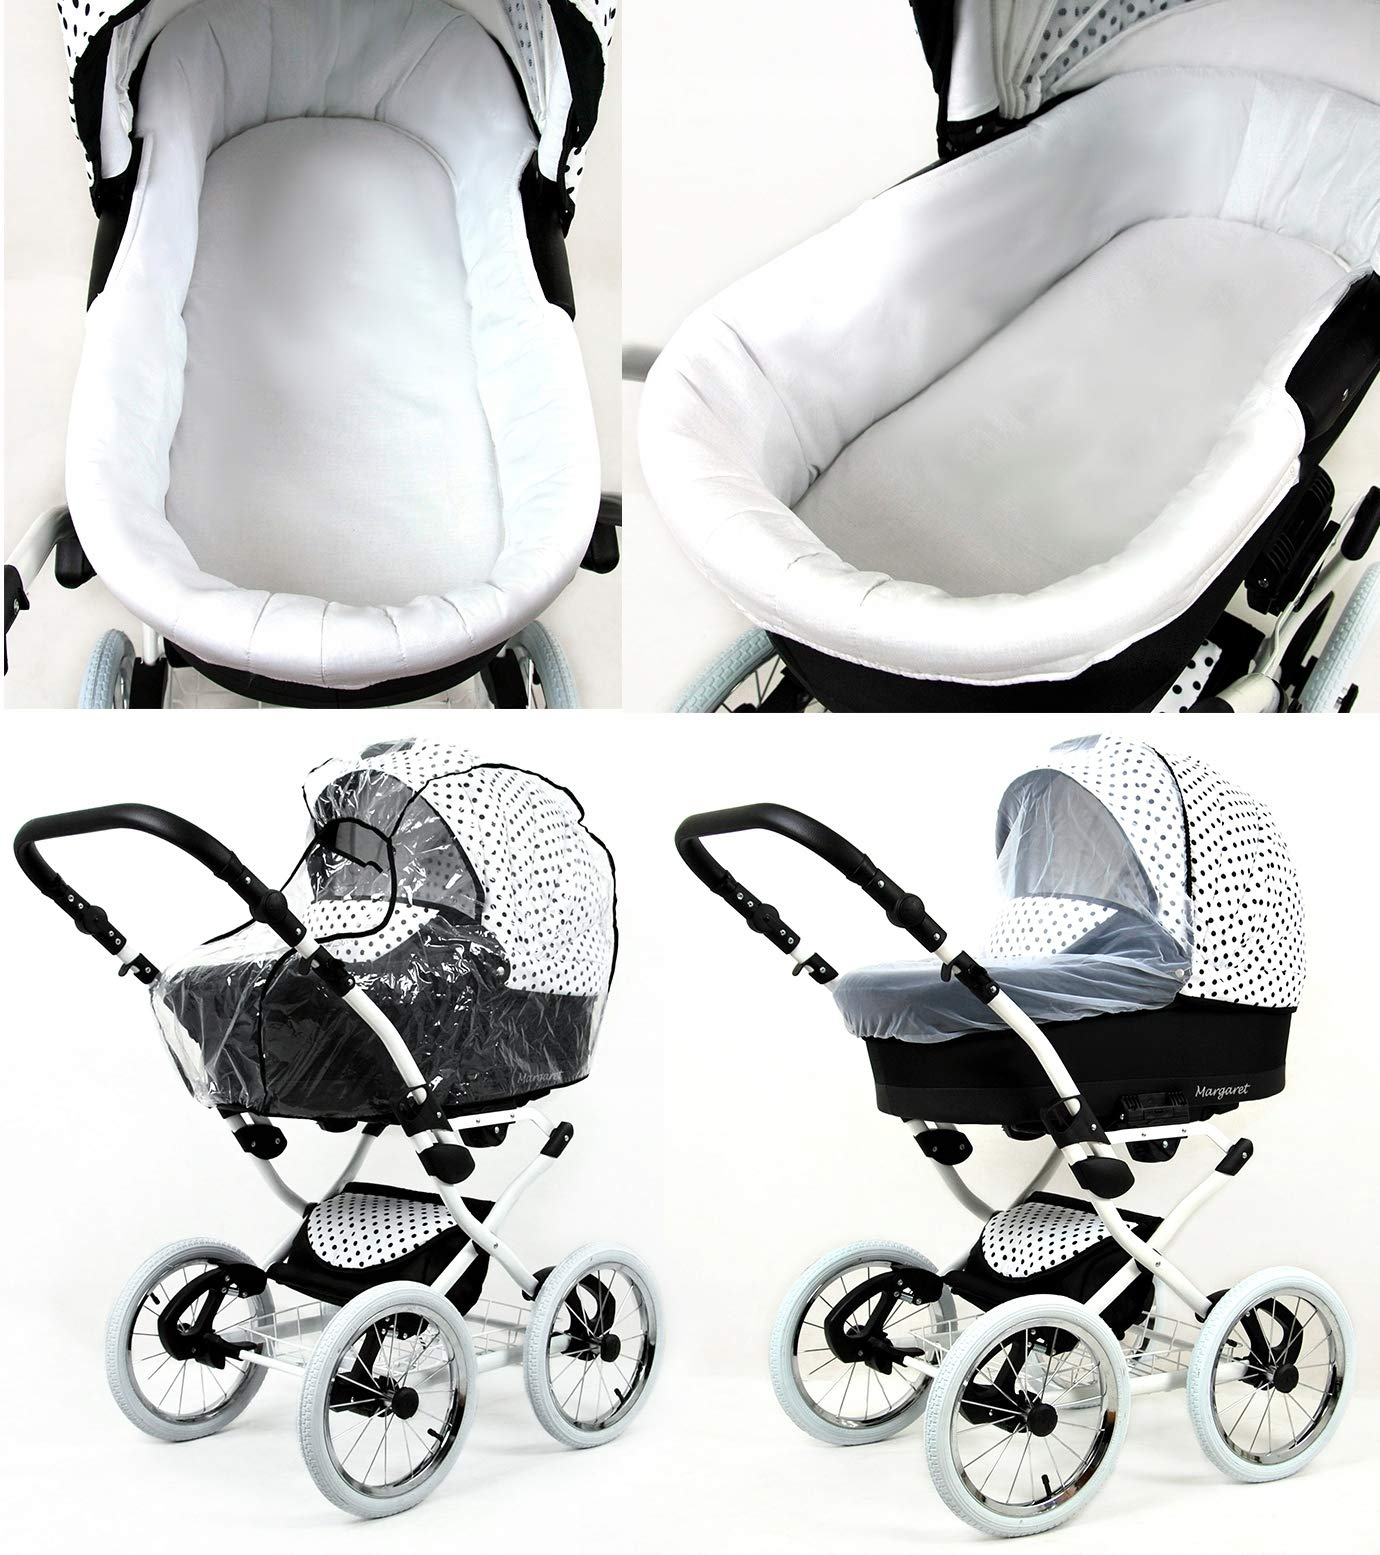 Travel System Retro Stroller Pram 2in1 3in1 Set Isofix Nostalgica by SaintBaby Navy Blue Star 2in1 Without Baby seat SaintBaby 3in1 or 2in1 Selectable. At 3in1 you will also receive the car seat (baby seat). Of course you get the baby tub (classic pram) as well as the buggy attachment (sports seat) no matter if 2in1 or 3in1. The car naturally complies with the EU safety standard EN1888. During production and before shipment, each wagon is carefully inspected so that you can be sure you have one of the best wagons. Saintbaby stands for all-in-one carefree packages, so you will also receive a diaper bag in the same colour as the car as well as rain and insect protection free of charge. With all the colours of this pram you will find the pram of your dreams. 6